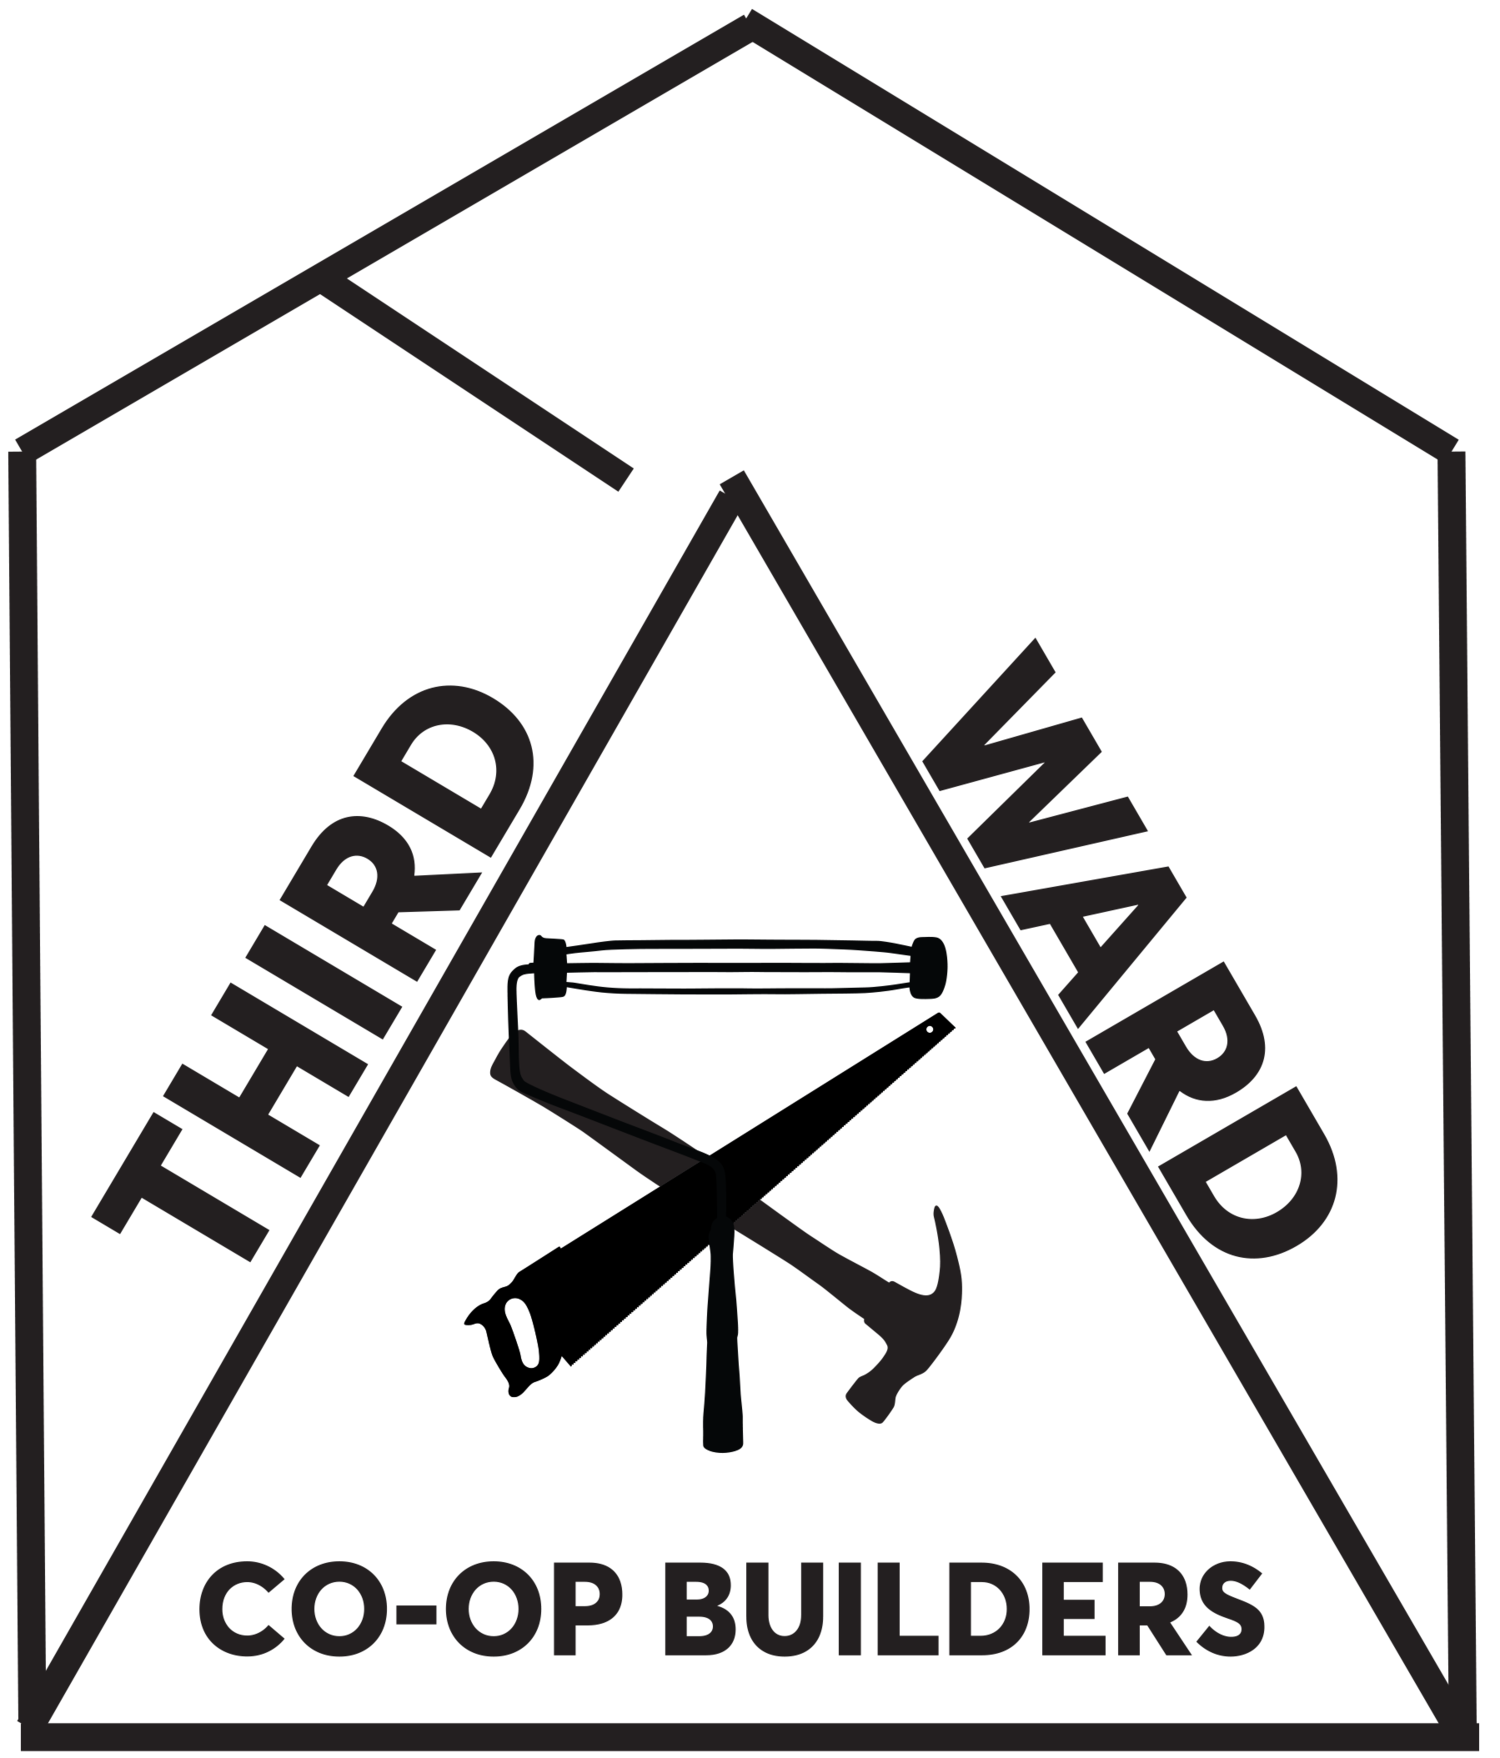 Third Ward Cooperative Community Builders